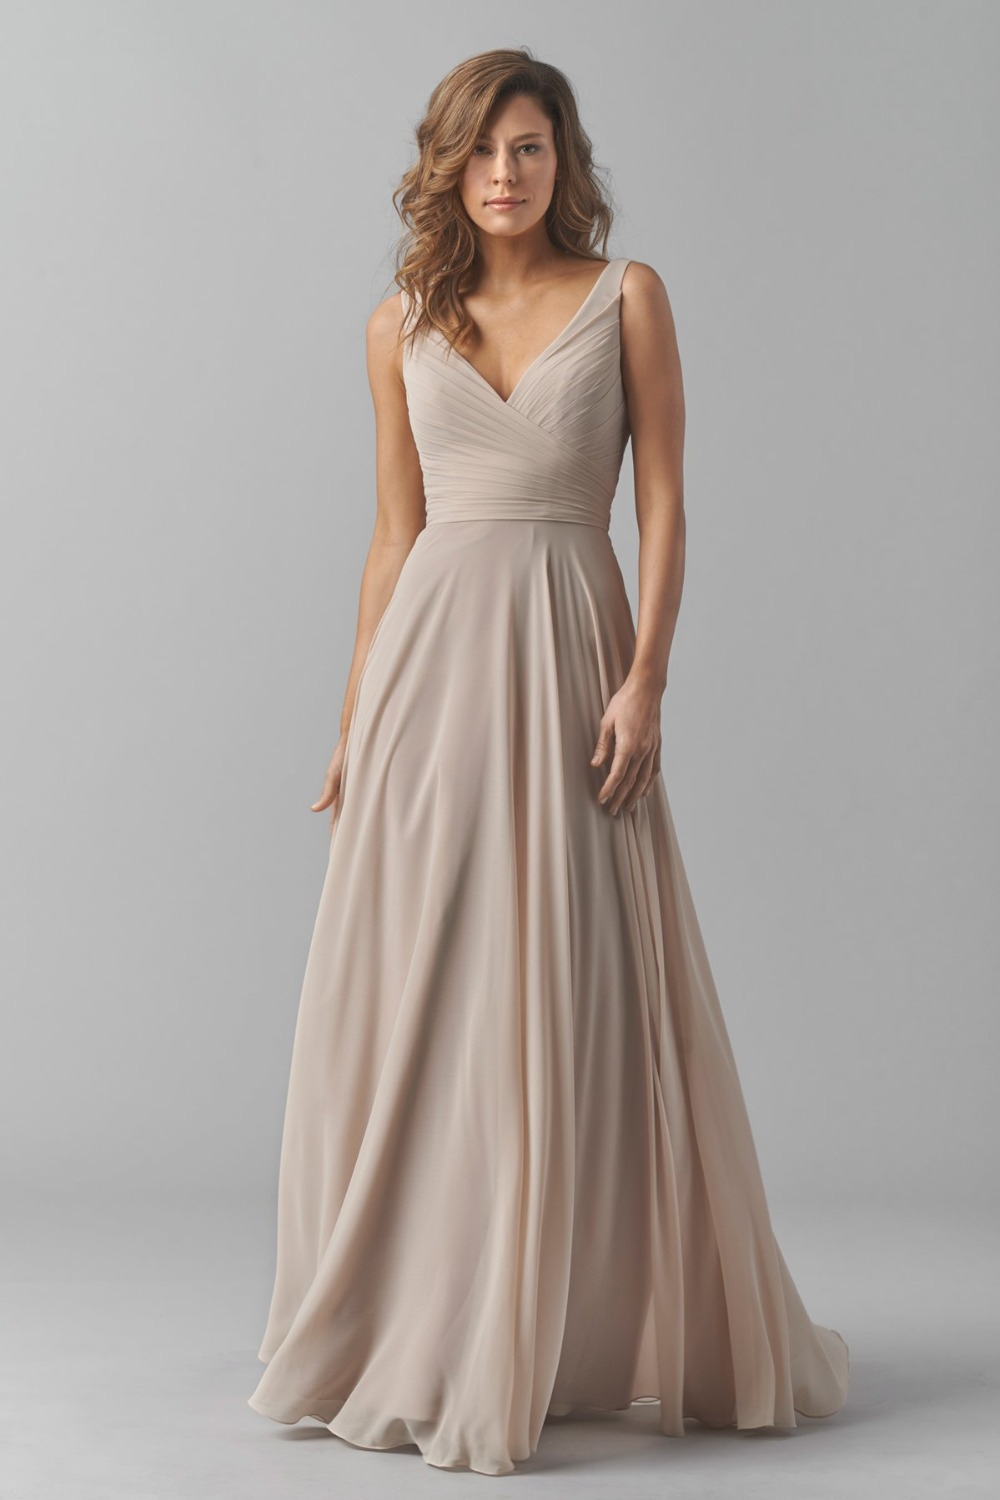 Compare Prices on Modern Evening Dress- Online Shopping/Buy Low ...